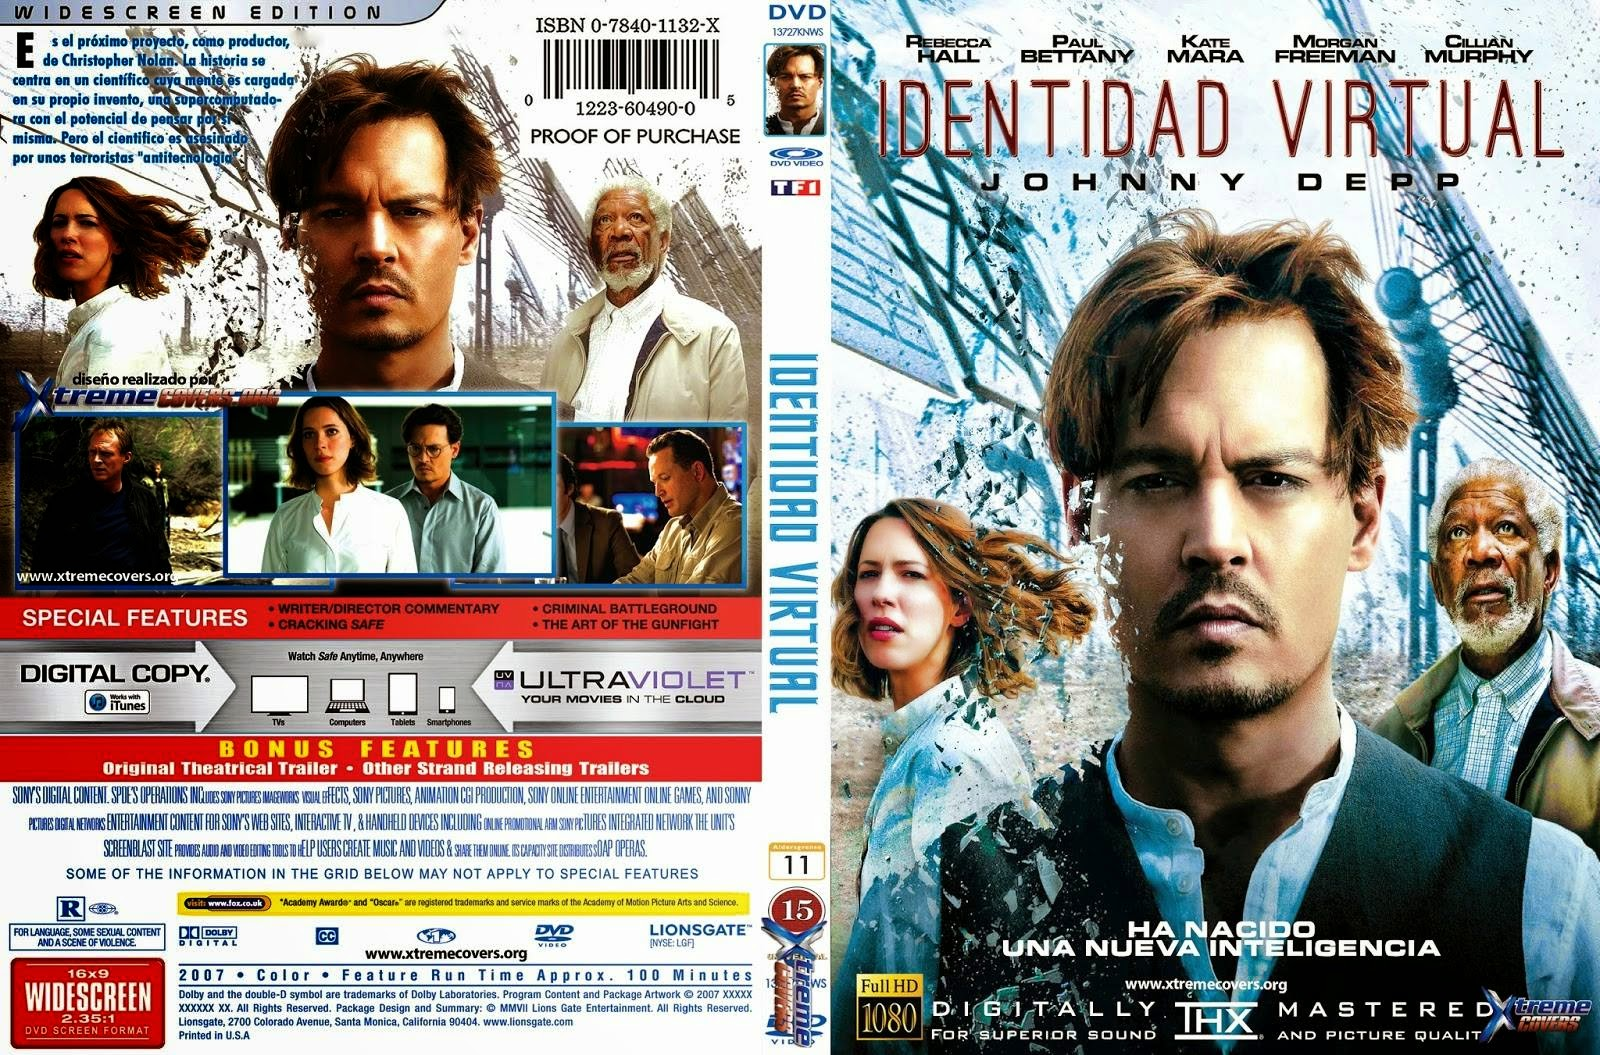 Avatar label   DVD Covers, BluRay Covers, and Cover art  Transcendence Dvd Cover Art